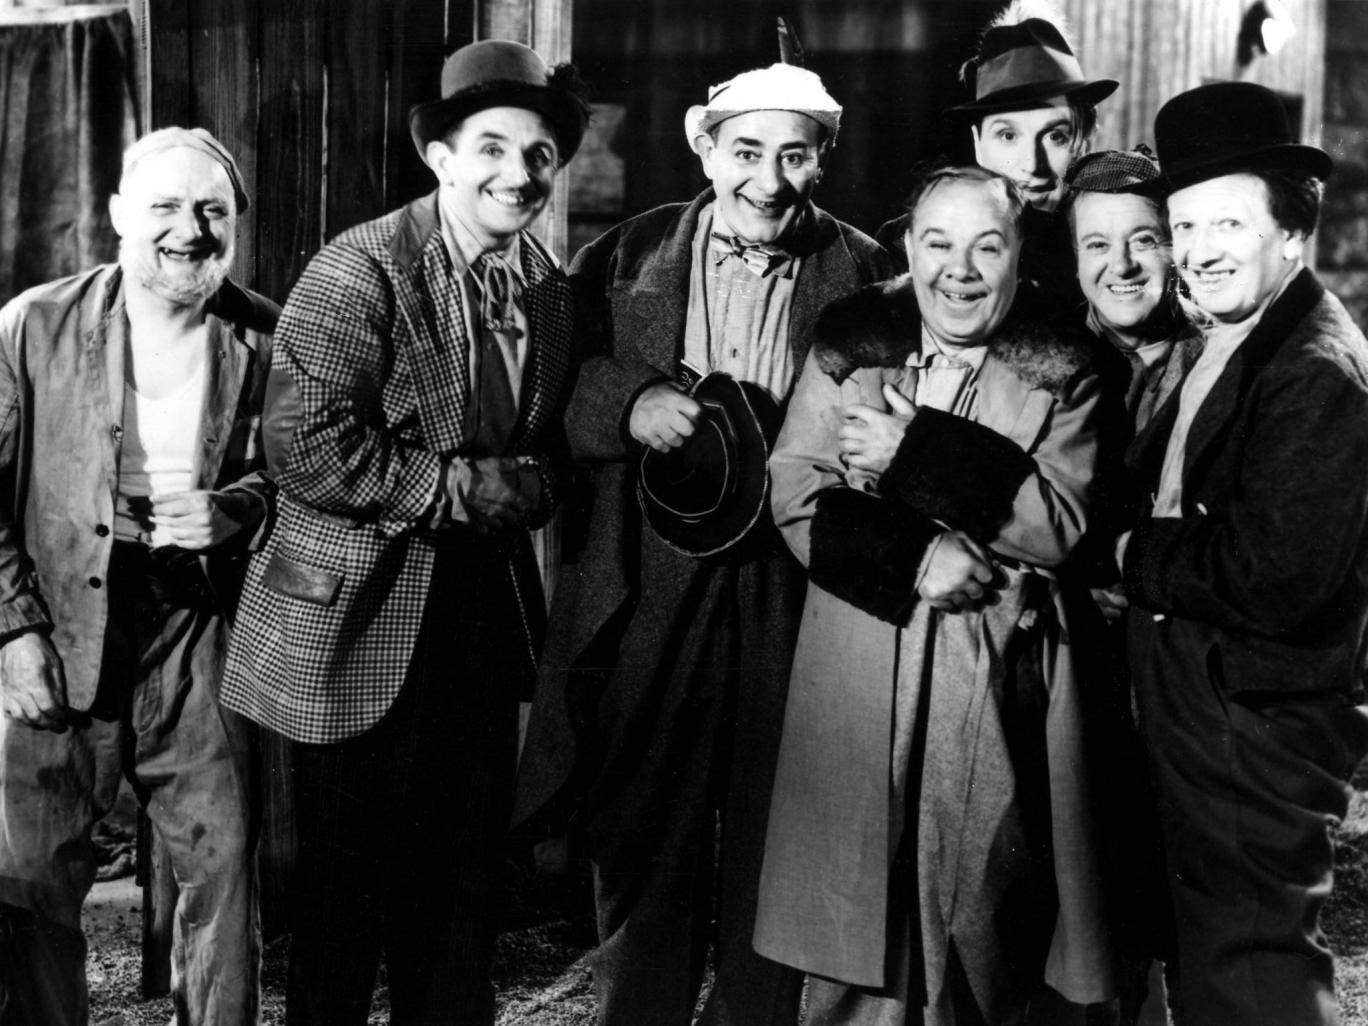 The Crazy Gang, hamming it up in 1941, 10 years after several acts joined forces